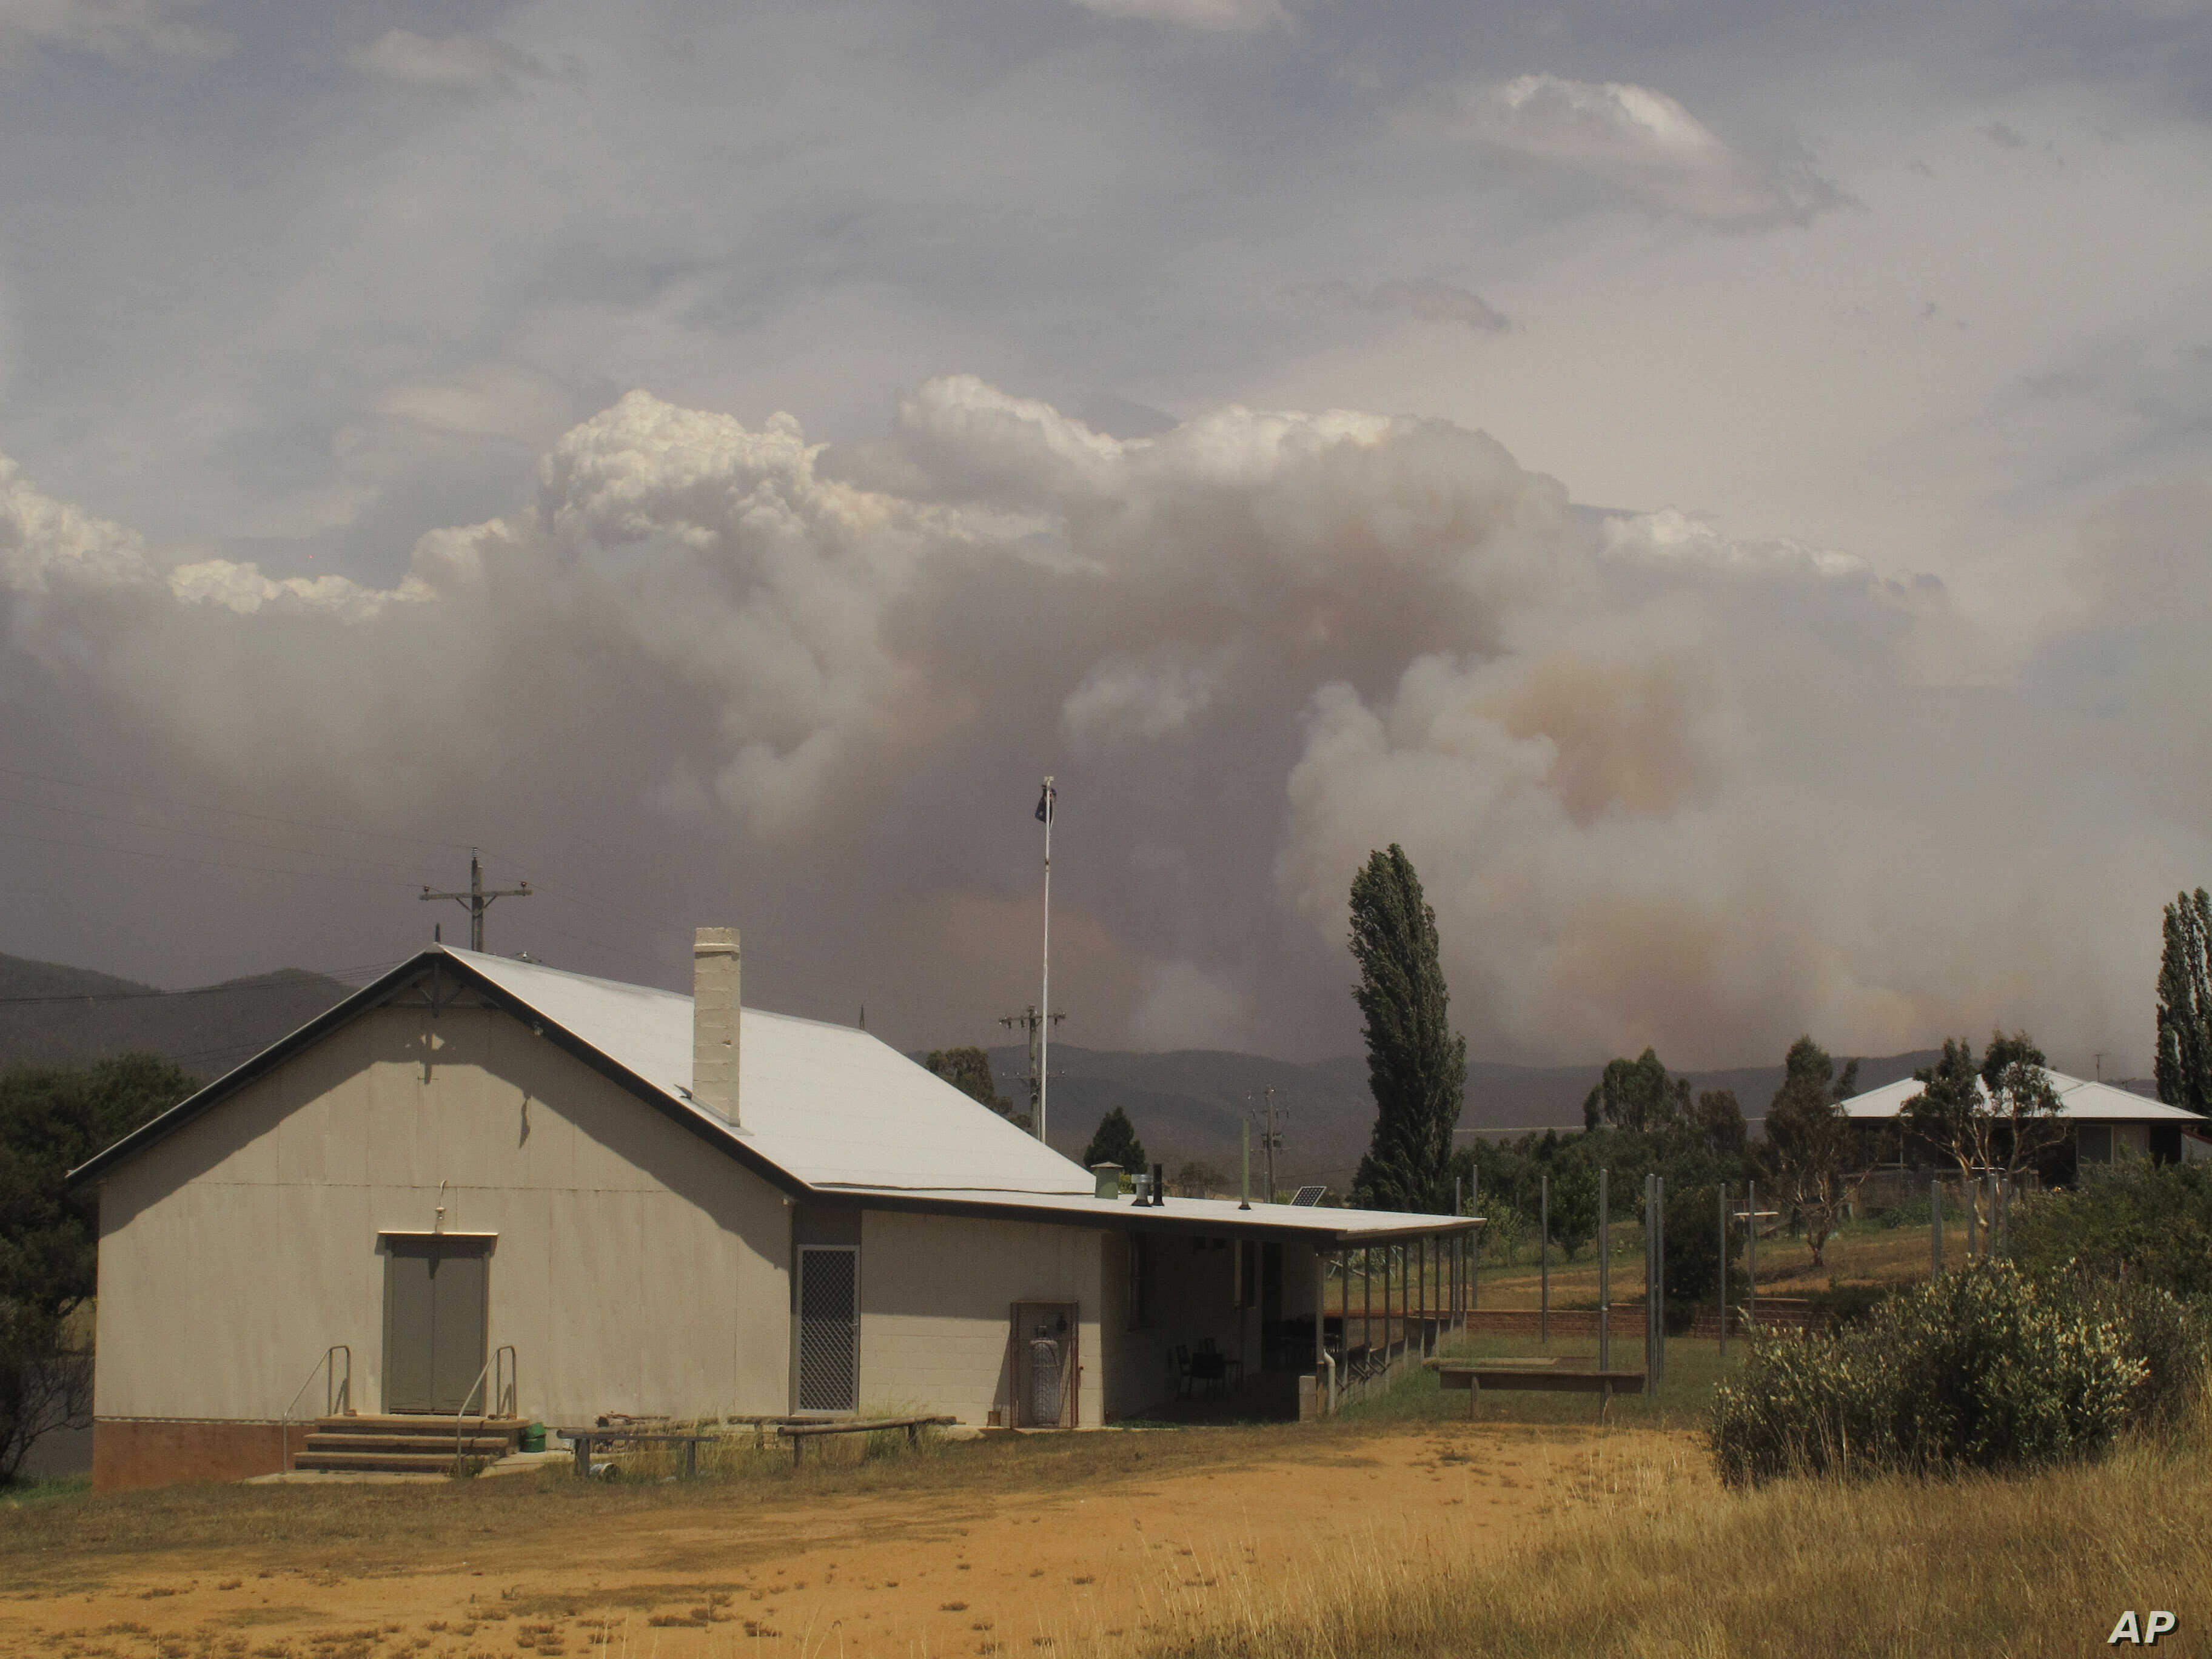 Wildfire smoke rises from hills behind the village of Numeralla in New South Wales state, Australia, January 8, 2013.